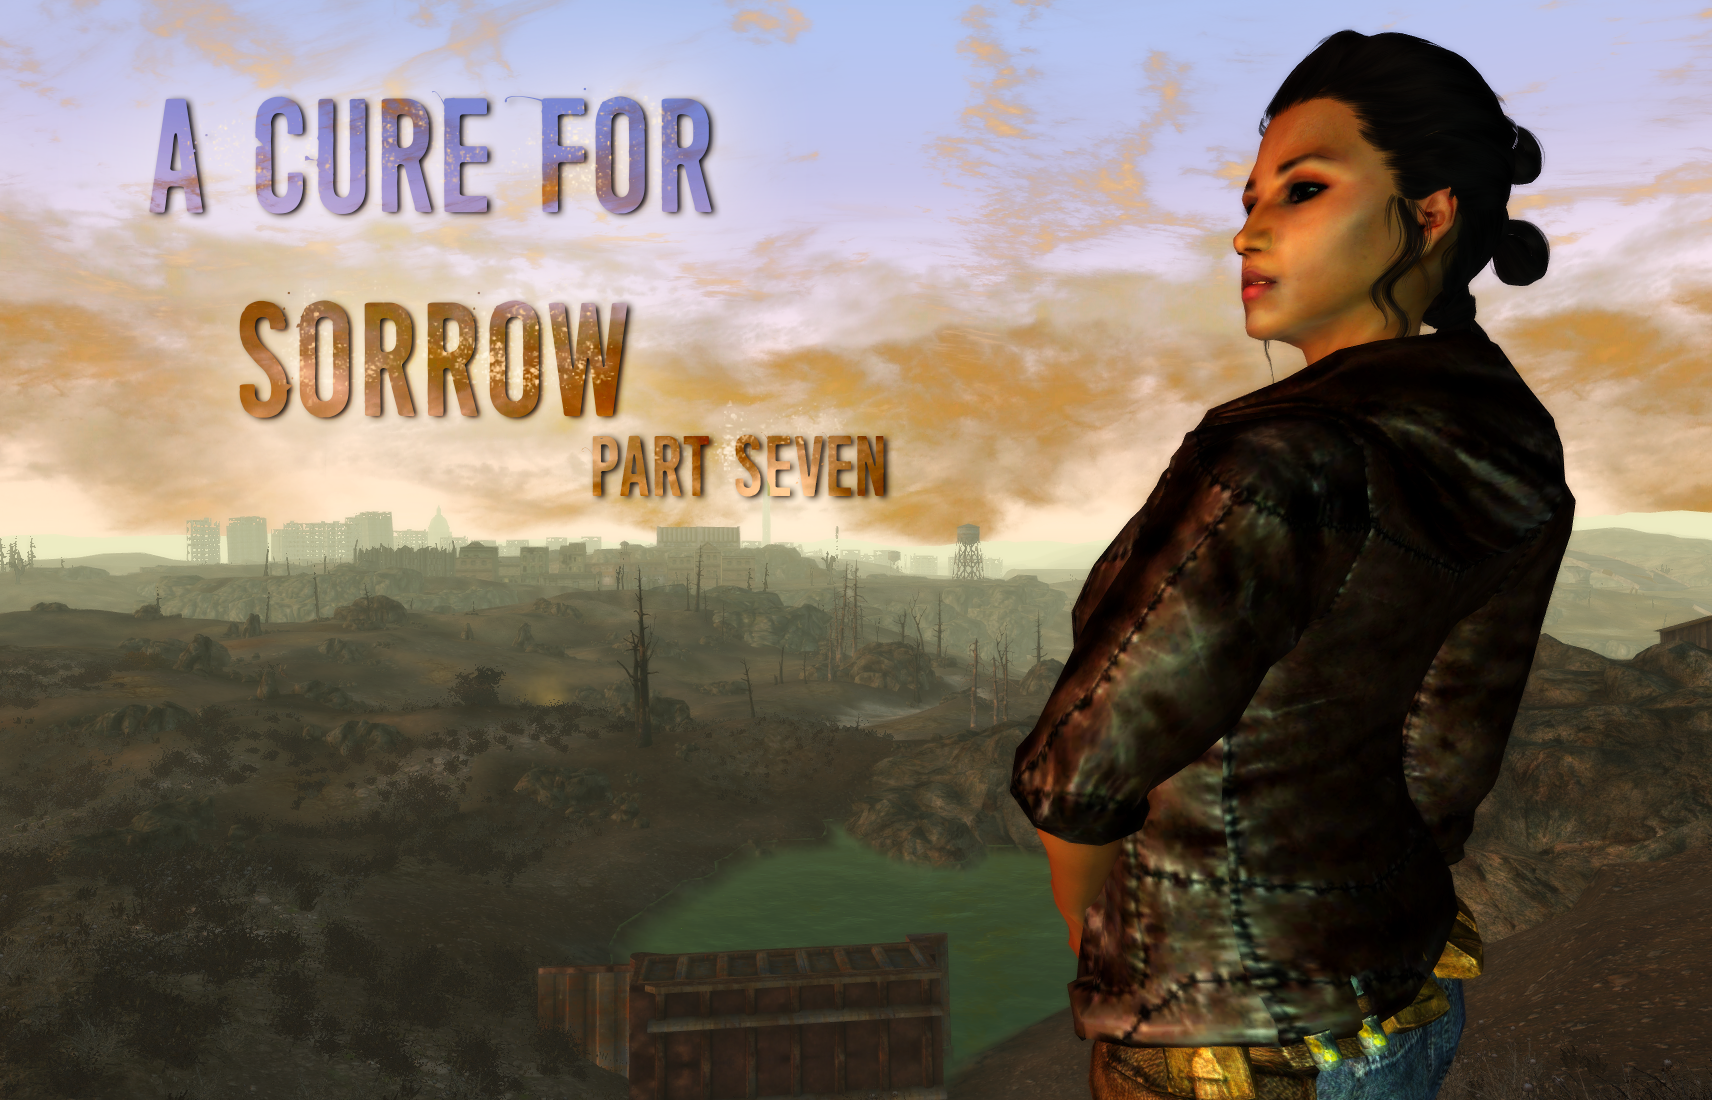 A Cure for Sorrow - Part Seven